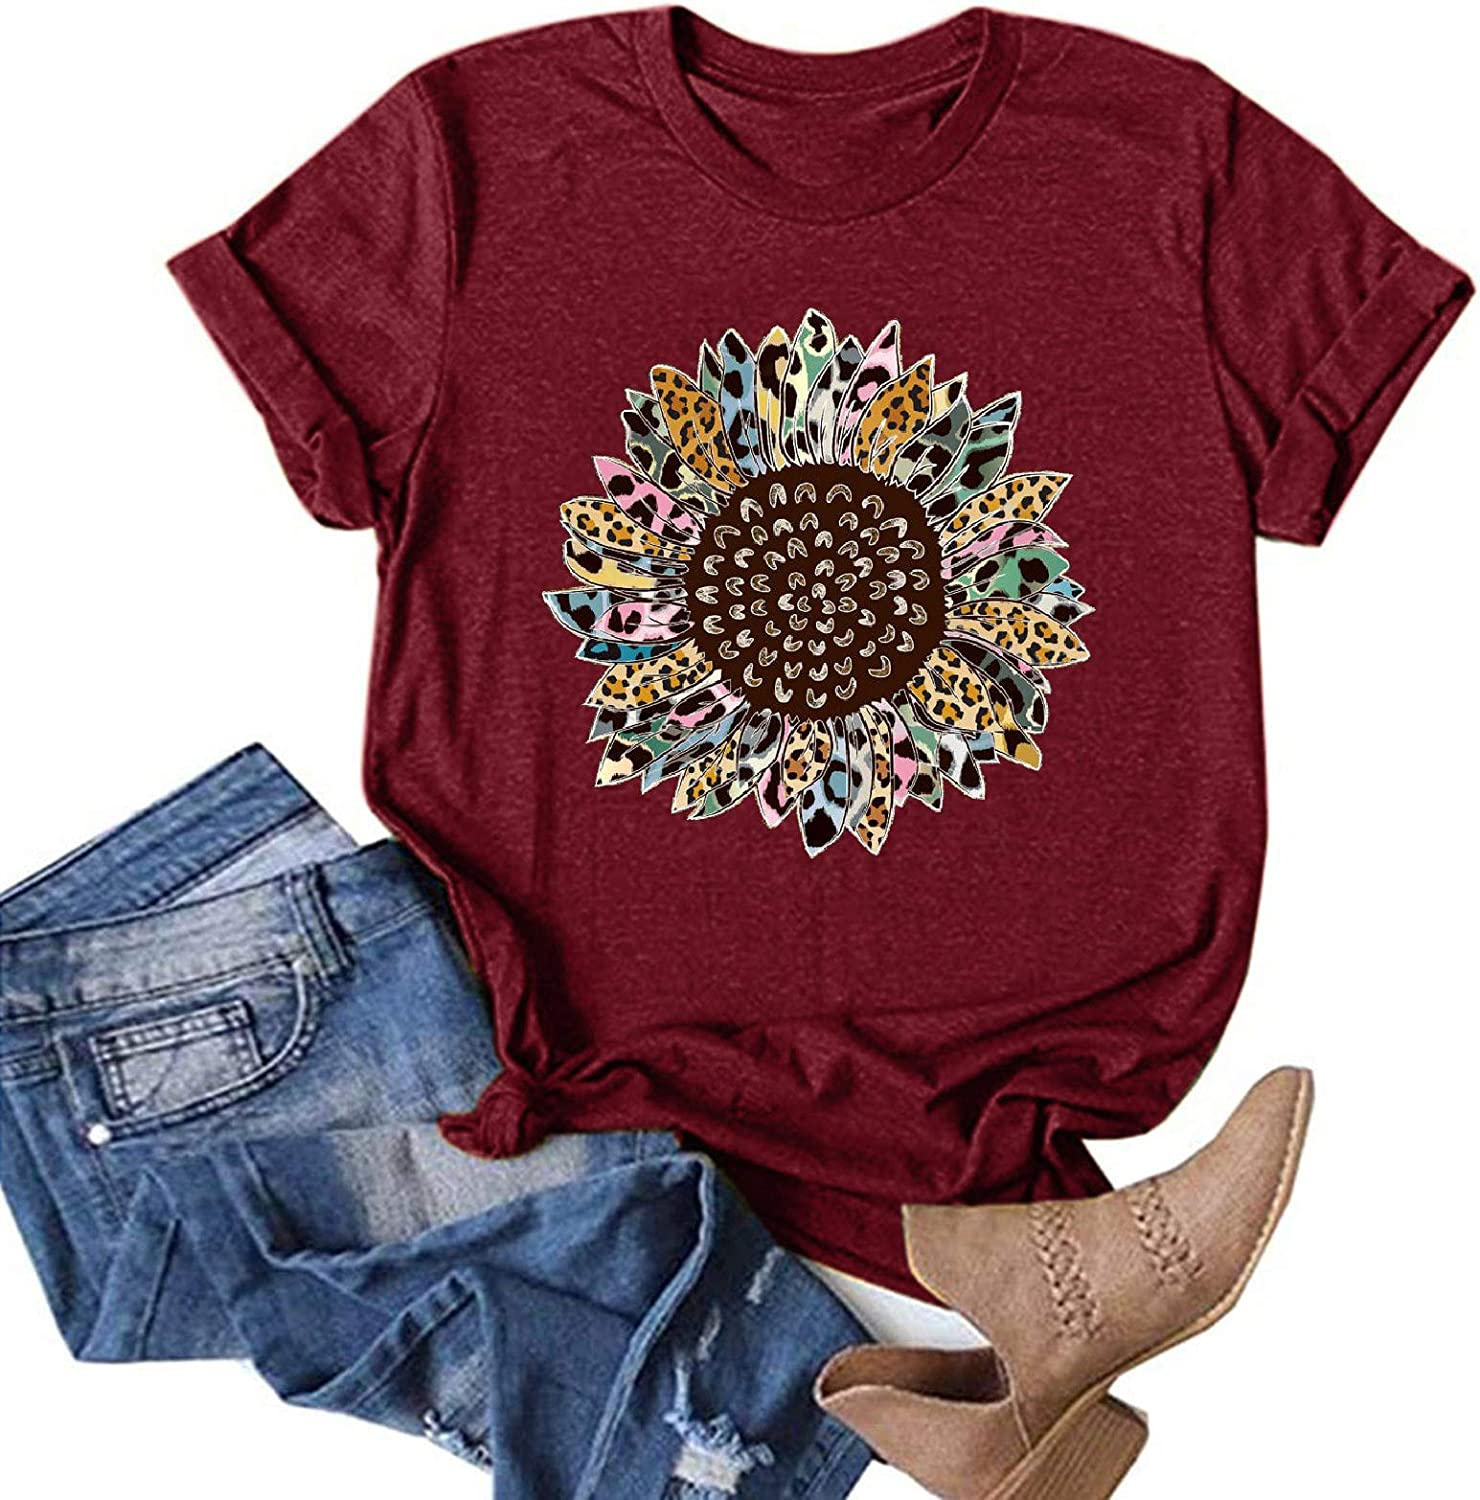 Womens Summer Tops,T-Shirts for Women Funny Graphic T-Shirts Casual Dandelion Printed Blouses Tunic Tees